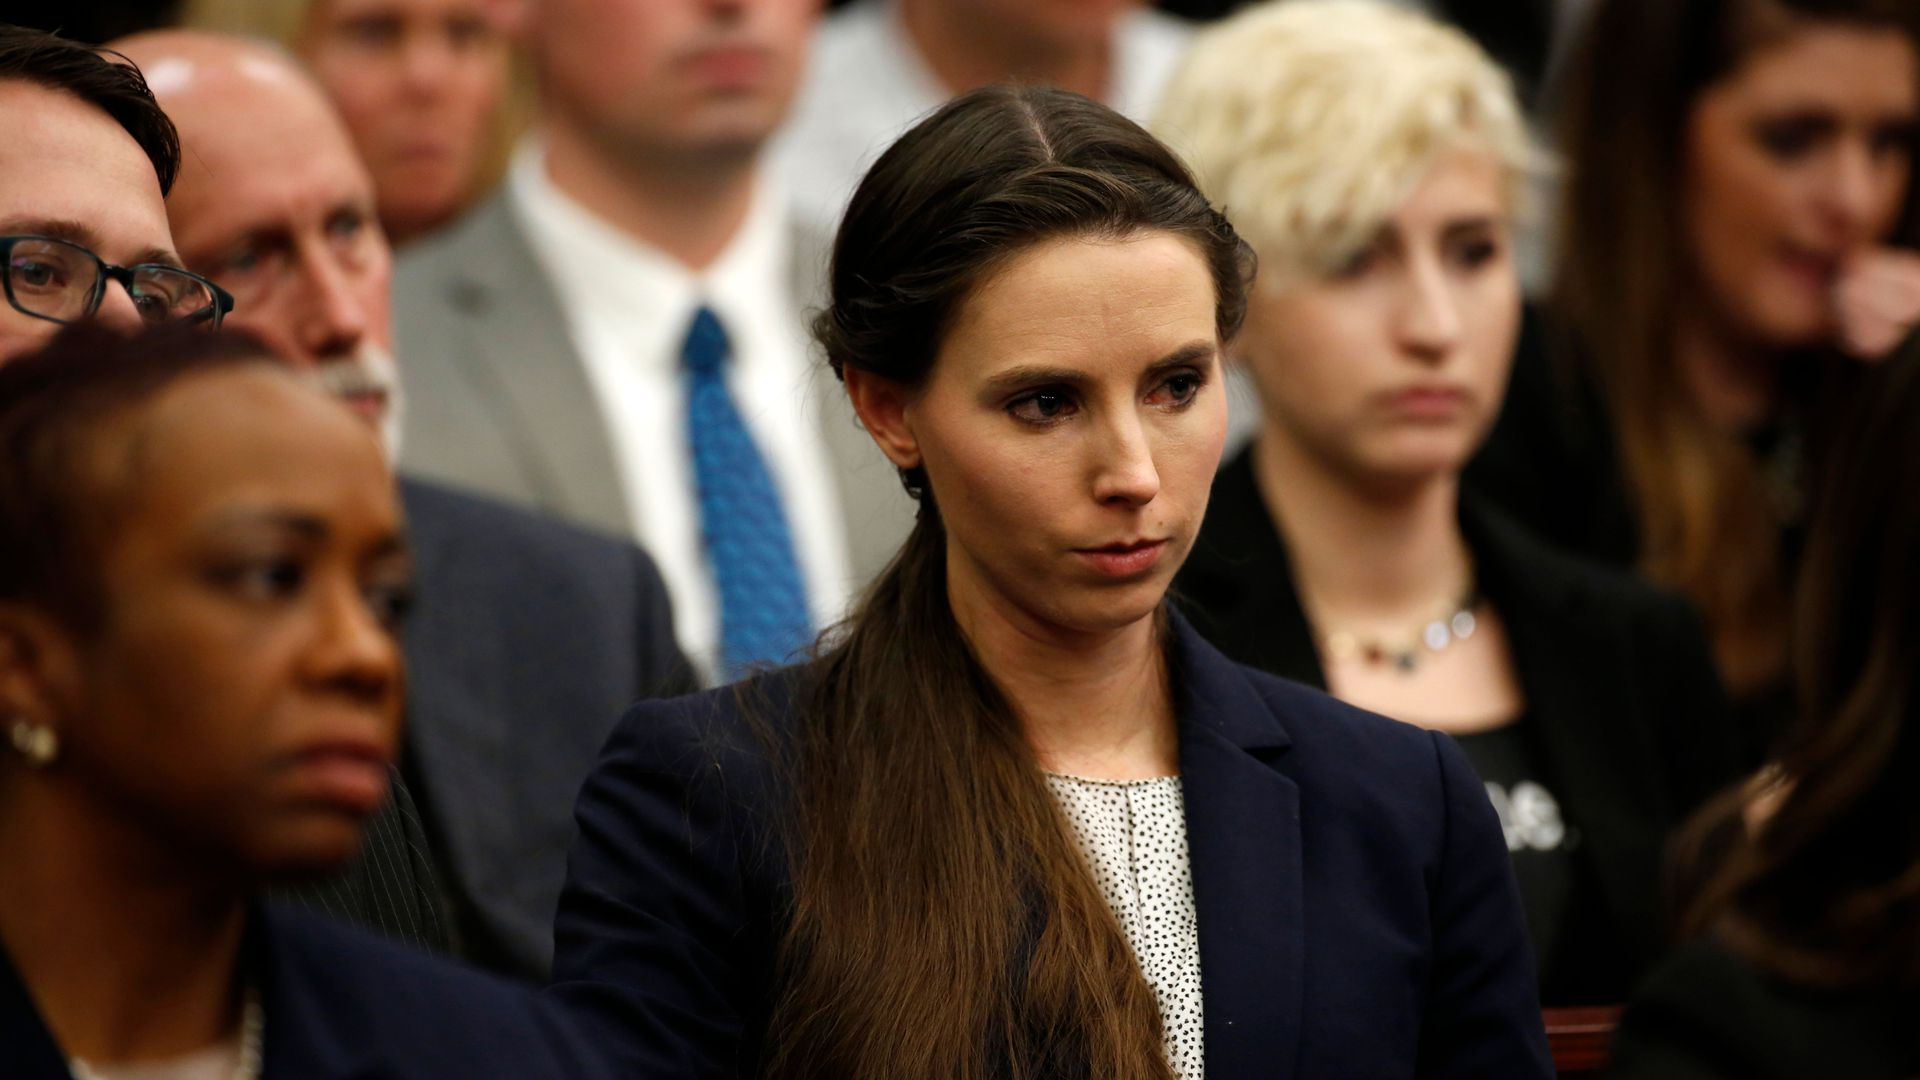 Rachael Denhollander who was victimized by former Michigan State University and USA Gymnastics doctor Larry Nassar.